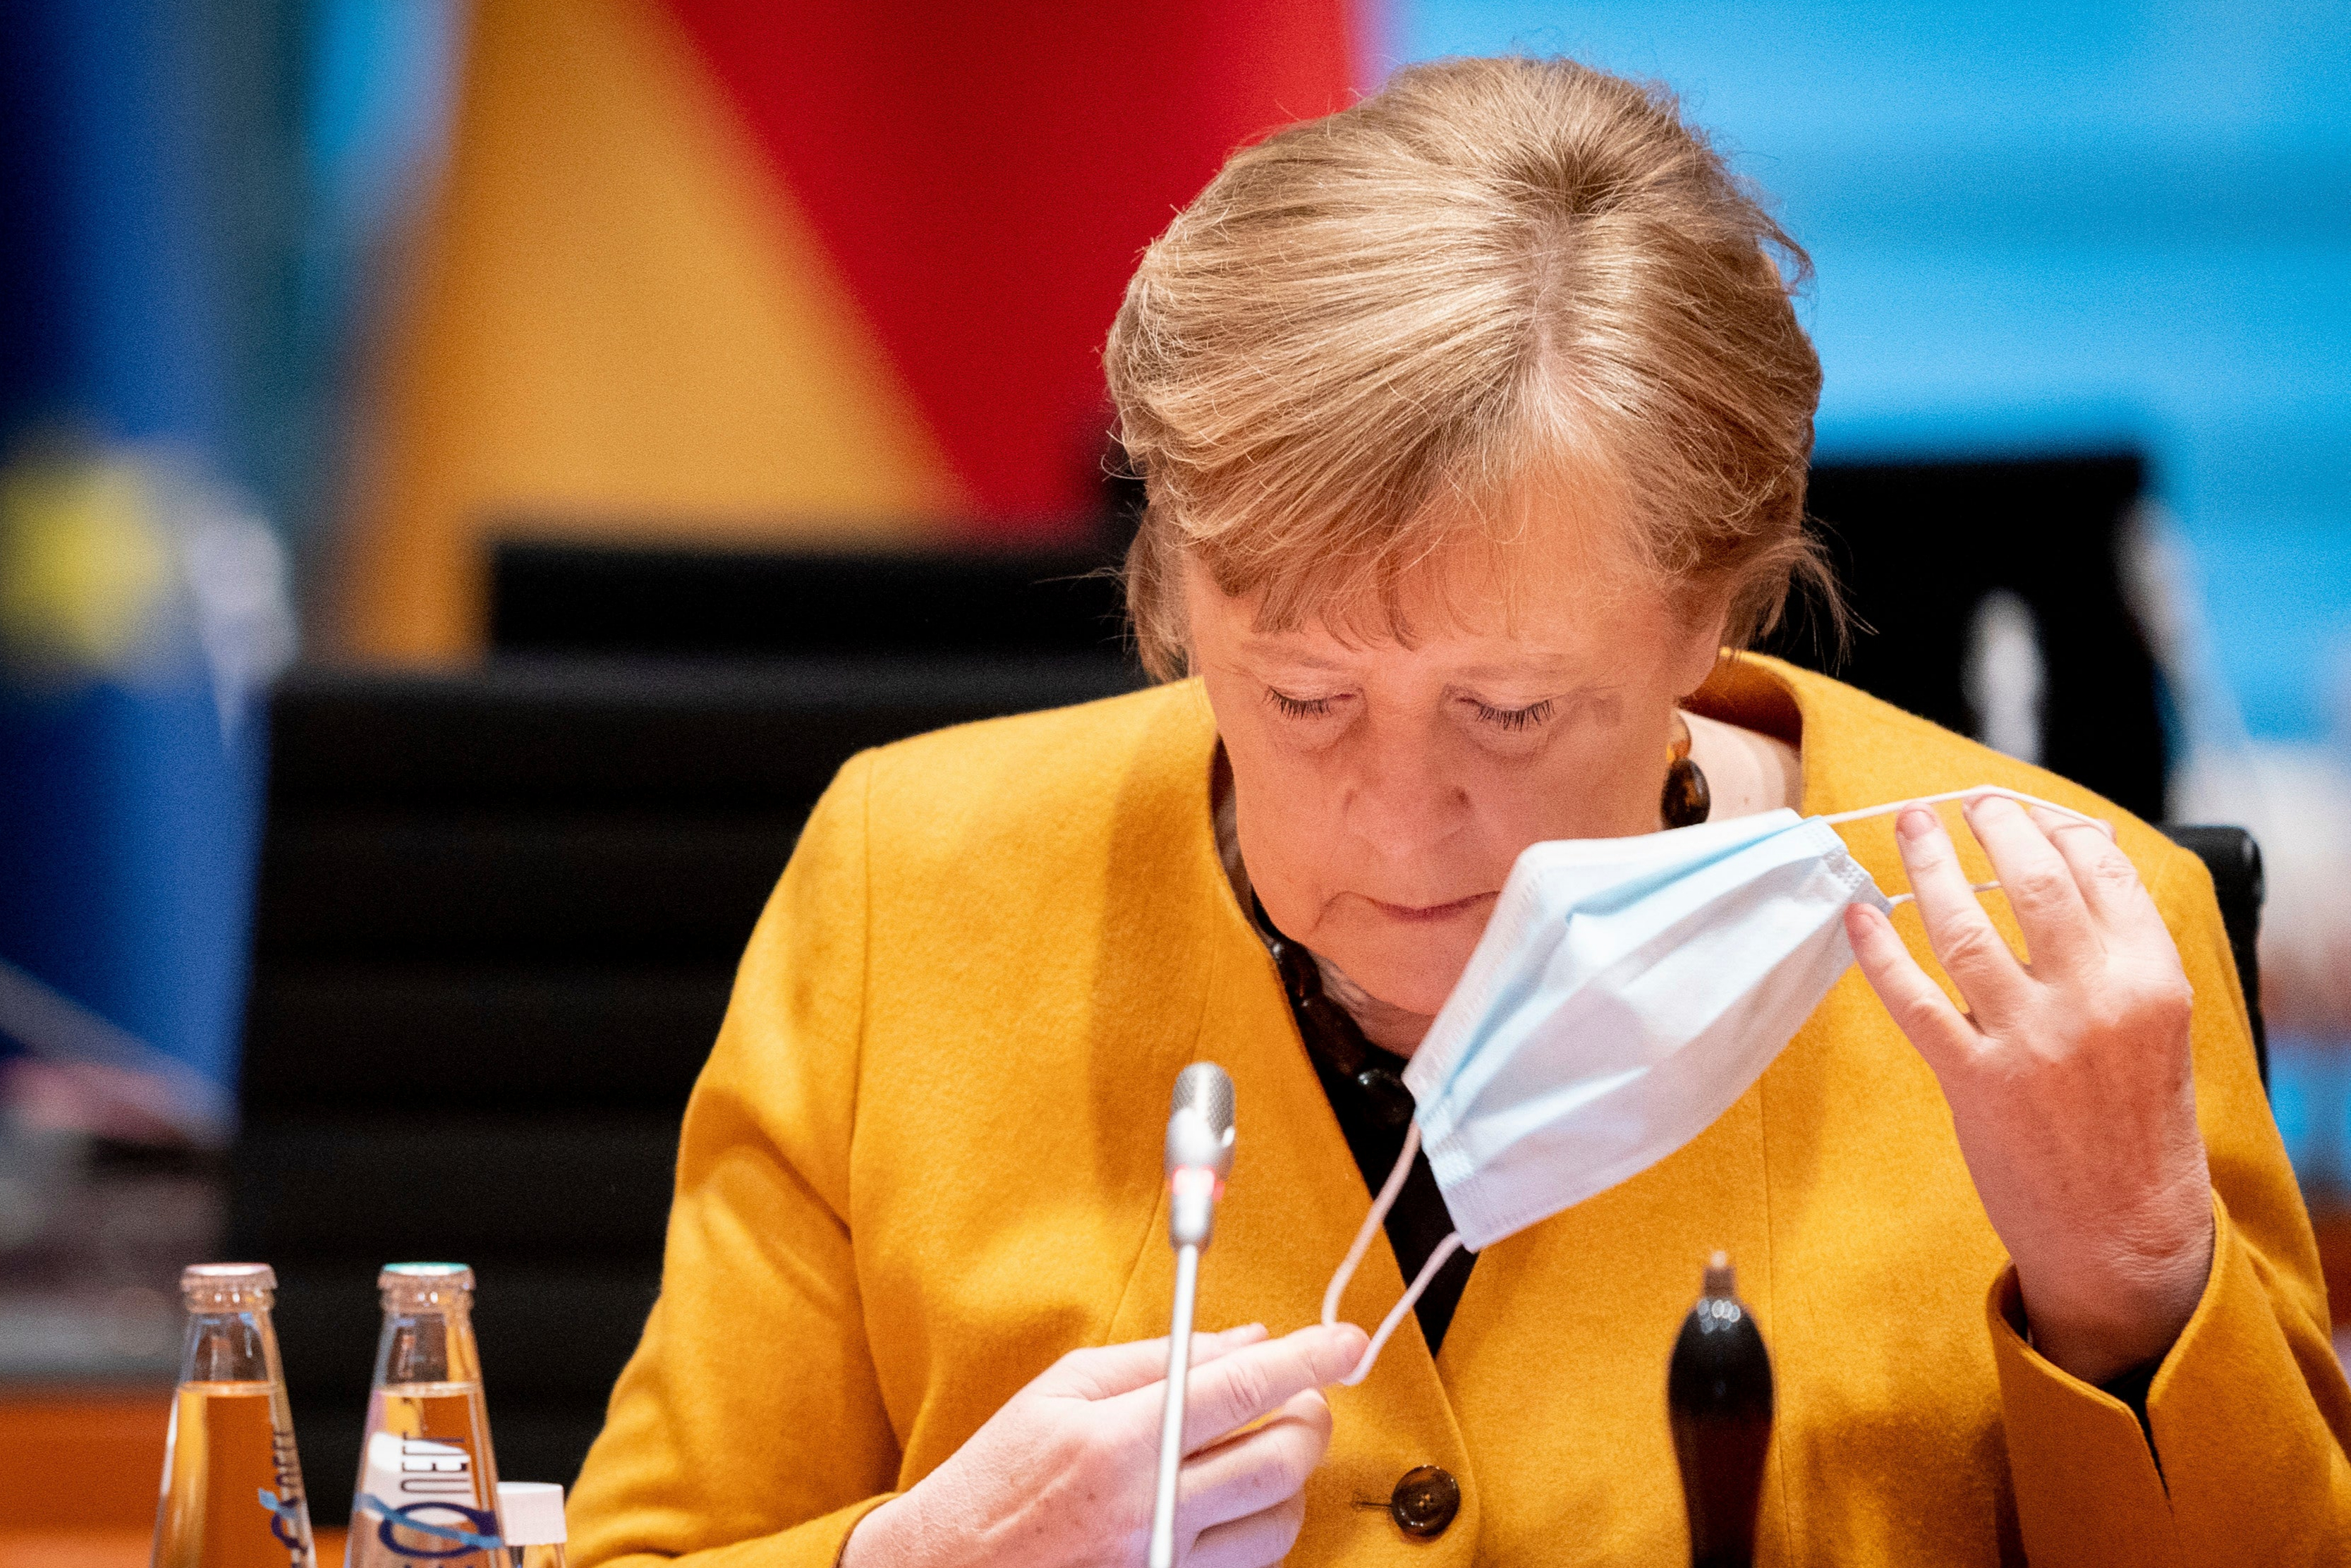 Angela Merkel cancels Germany's five day Covid lockdown, saying: 'It was mistake'